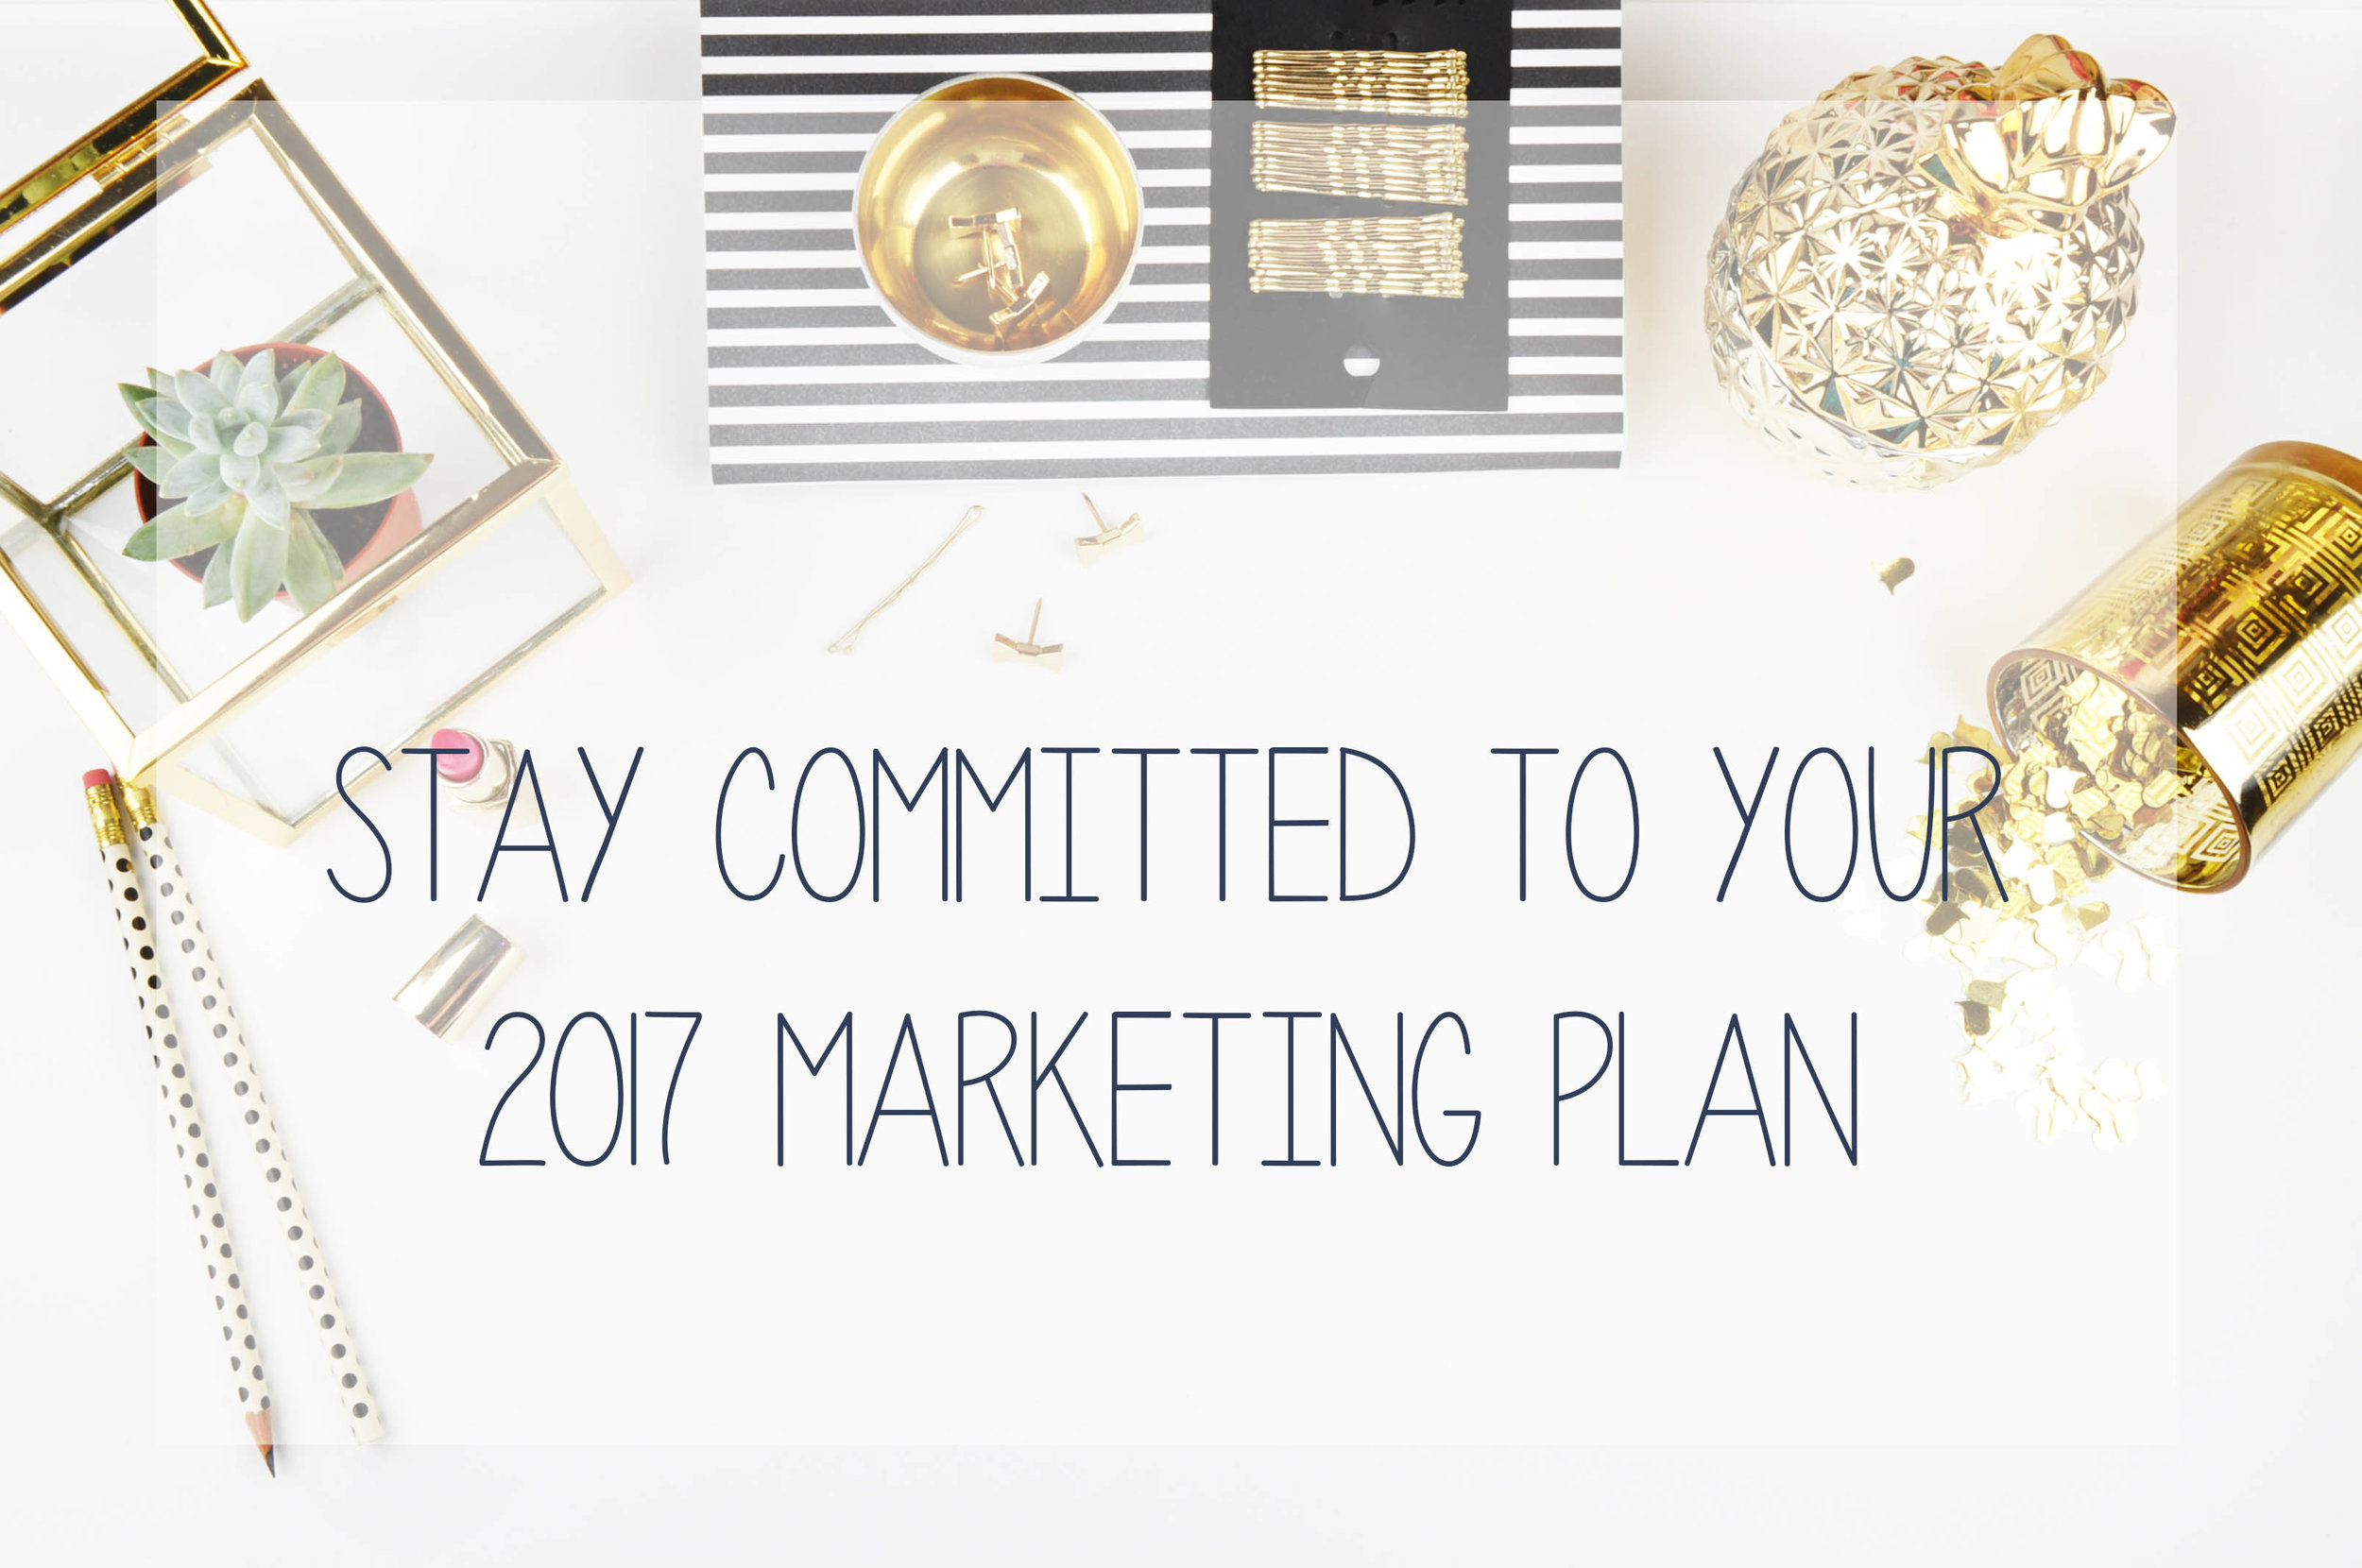 Learn how you can committ to a successful marketing plan in 2017 with the girls from Hub Digital Marketing.